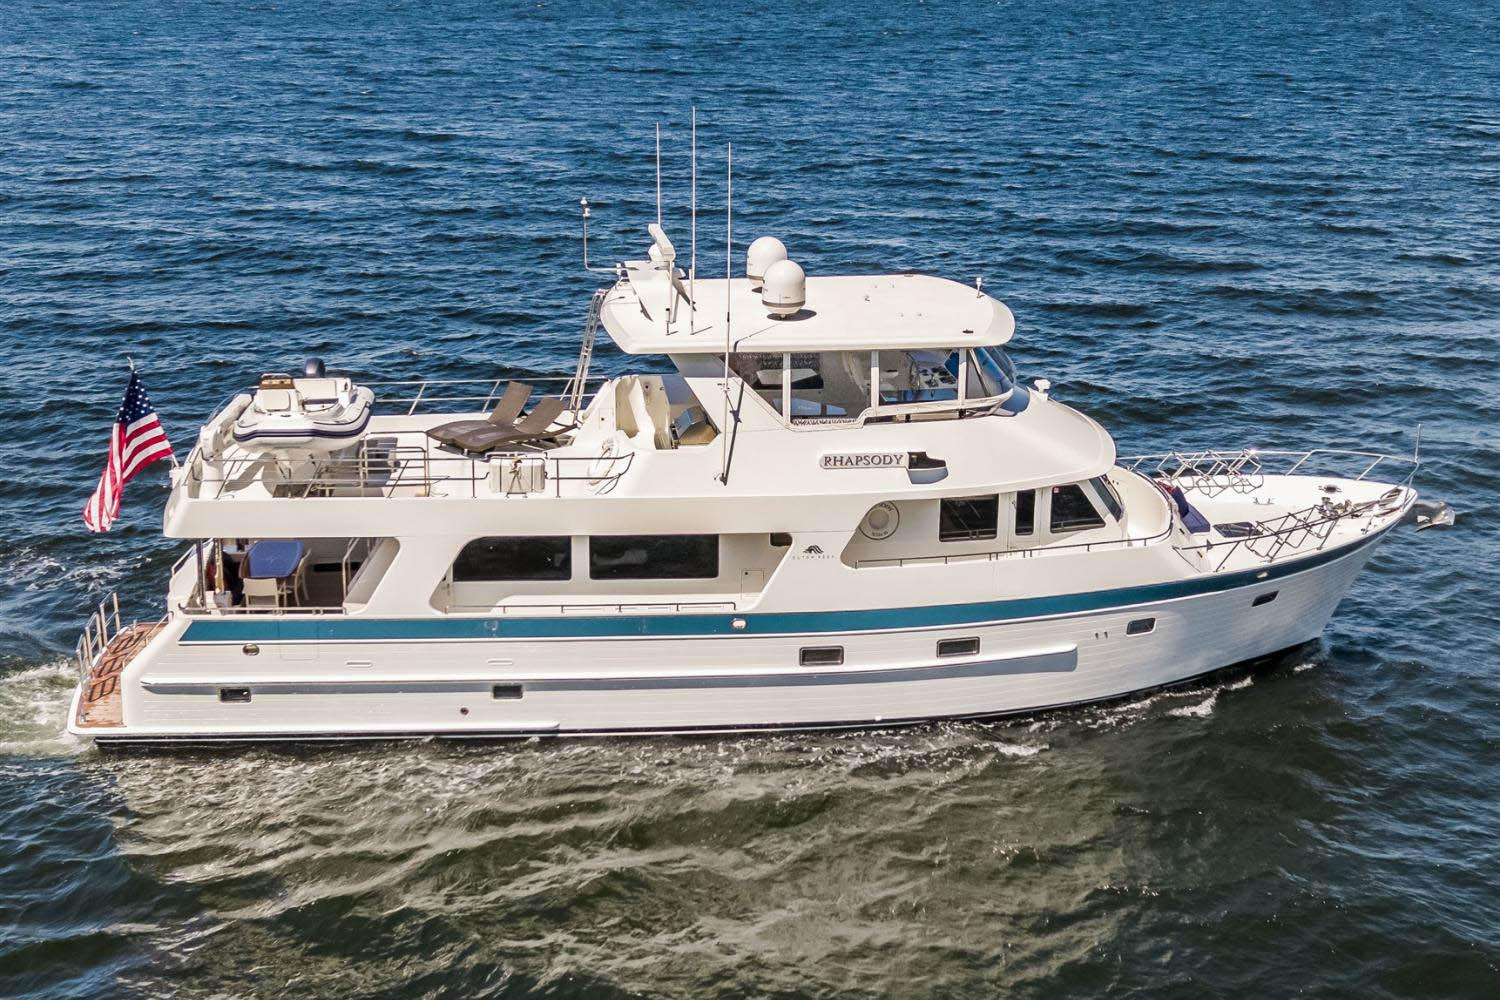 Outer Reef Yachts Boat image